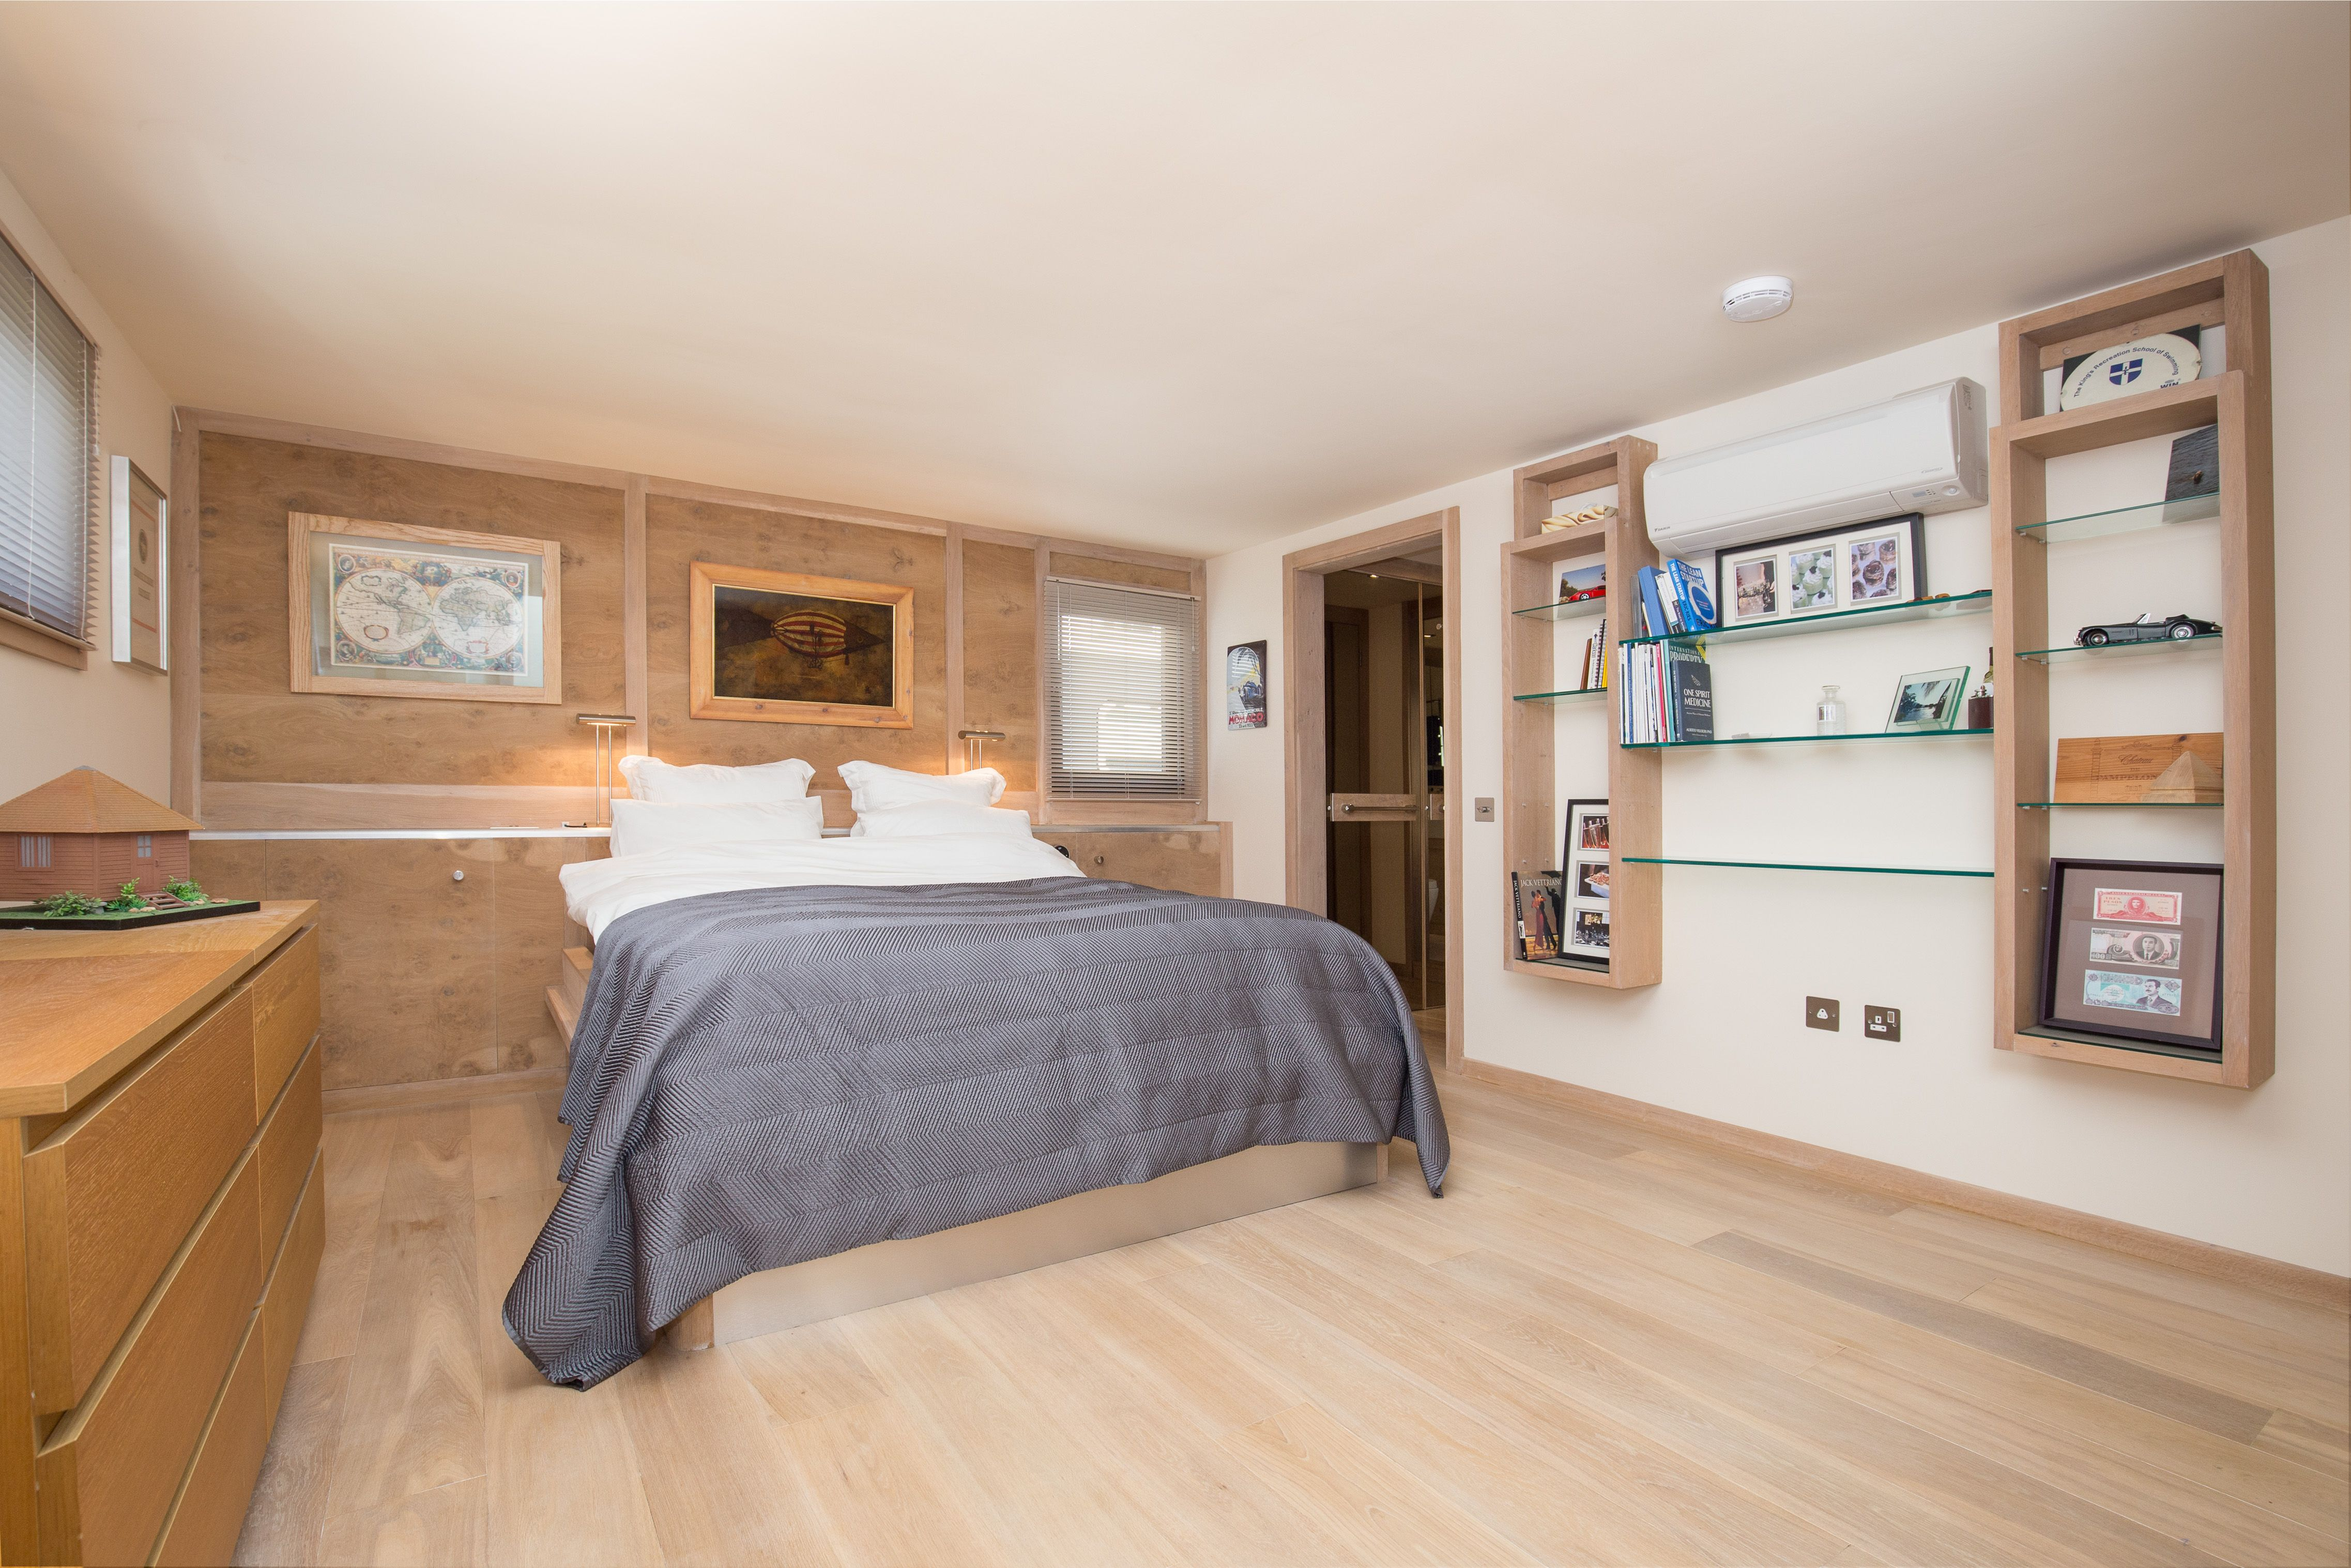 Modern houseboat with plenty of character for sale in Wandsworth